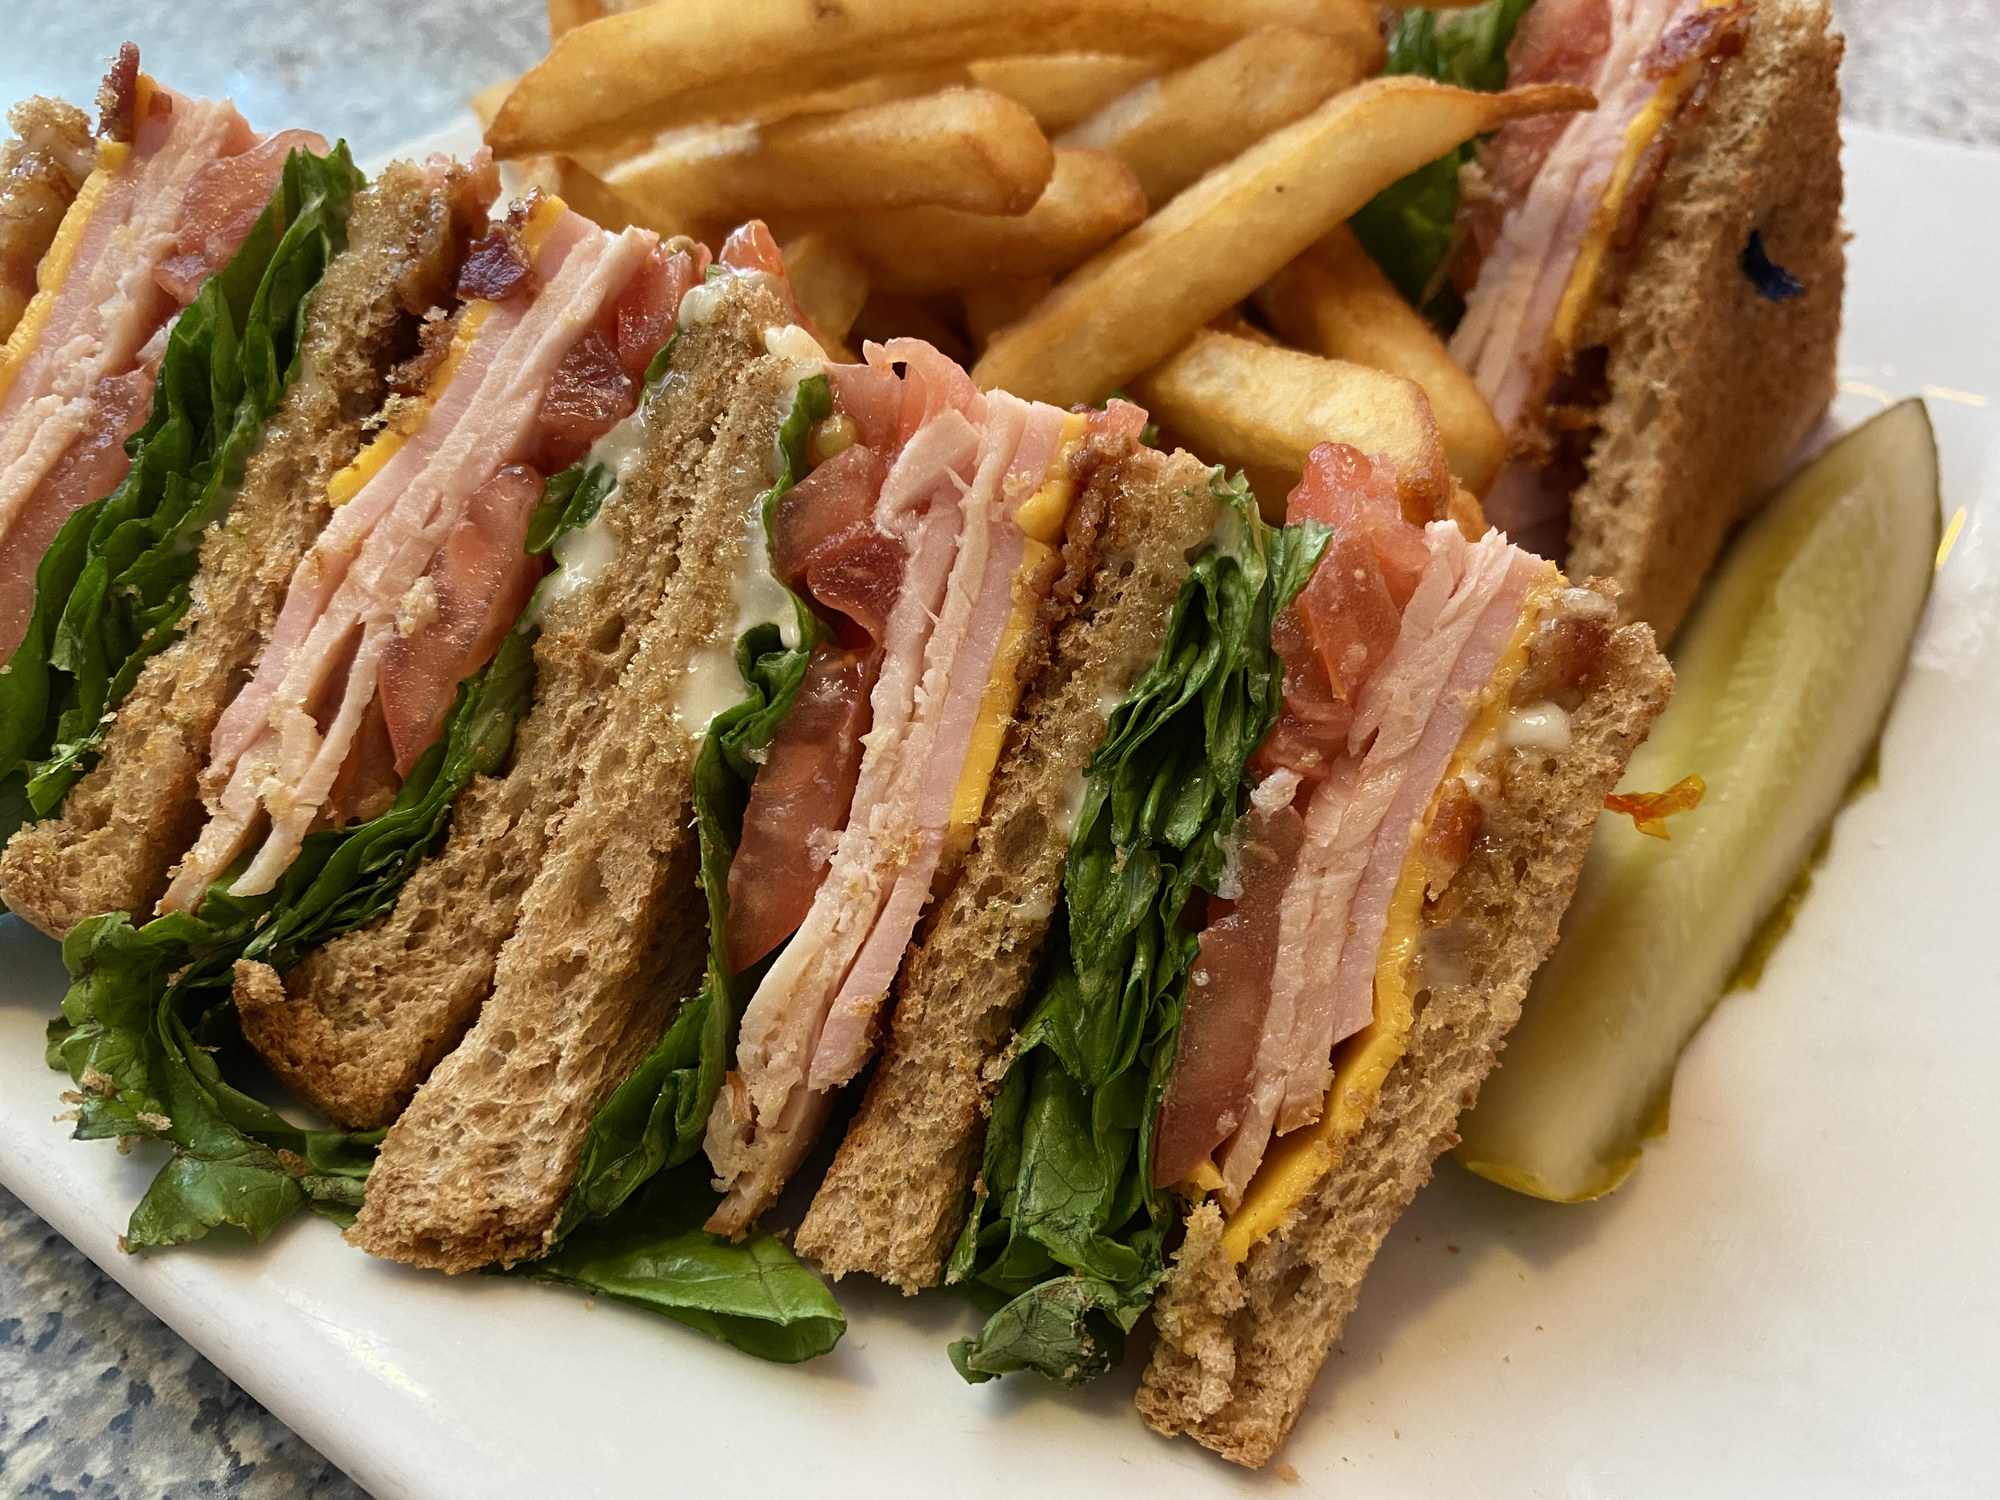 A club sandwich and fries.